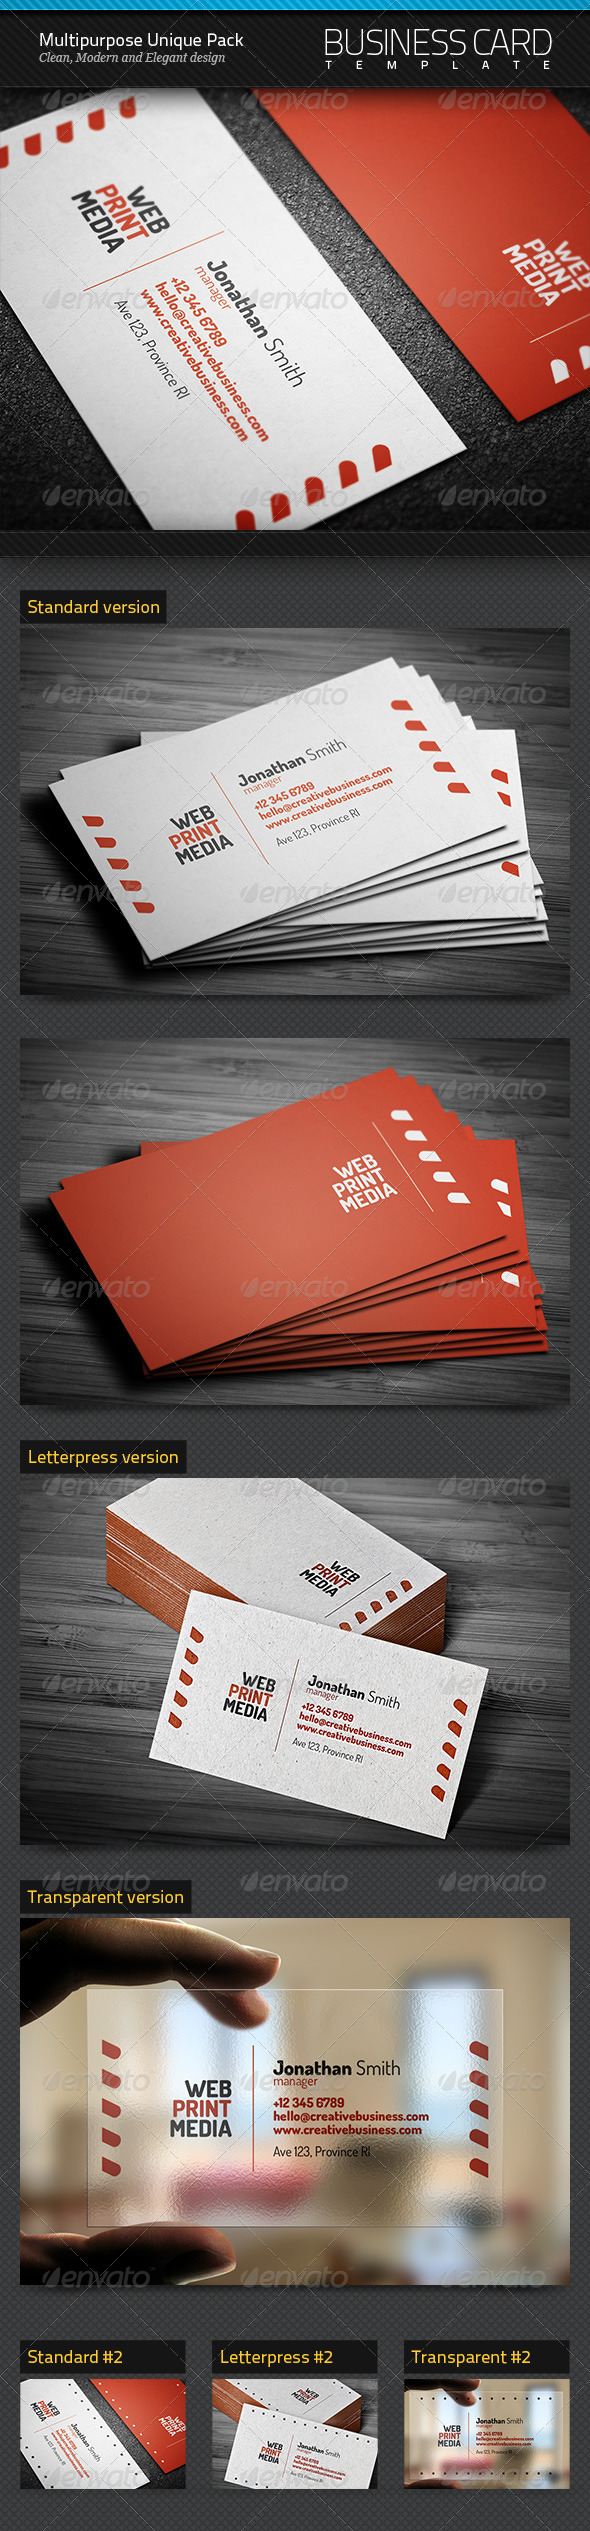 GraphicRiver Multipurpose Unique Pack of Business Cards 6860412